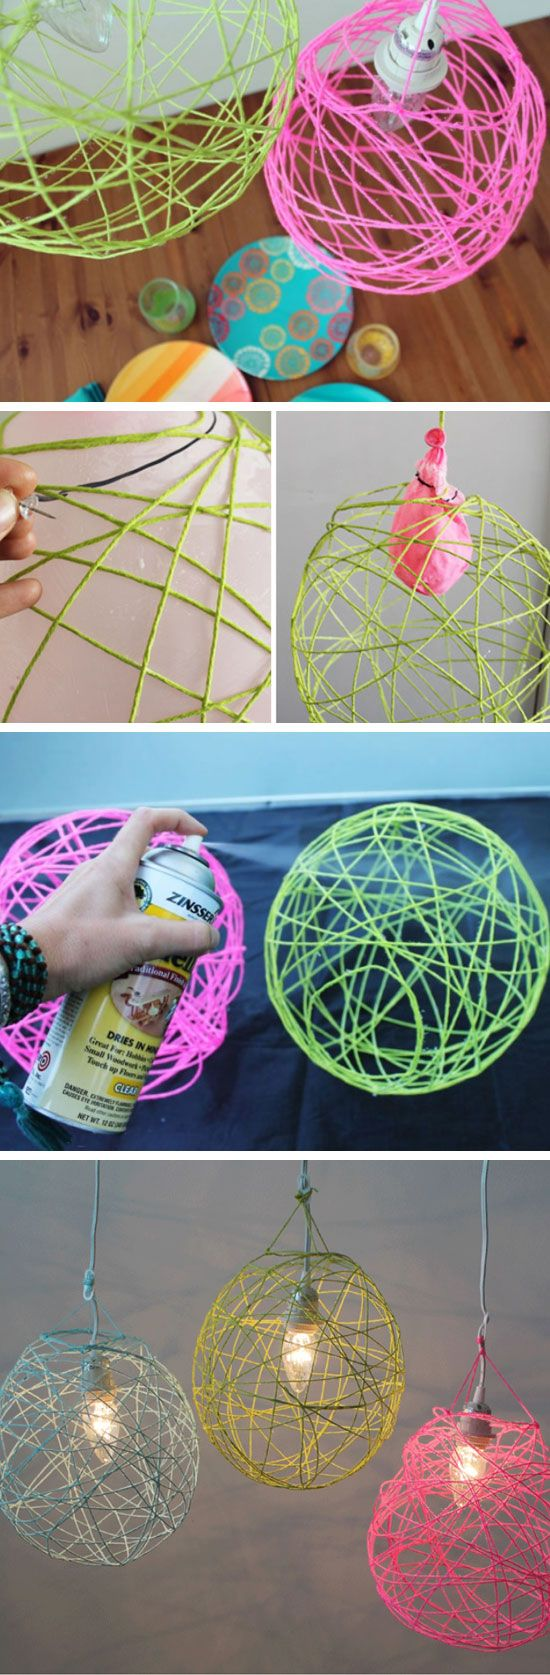 Unique Cloud Lantern Ideas On Pinterest Cloud Lights Cotton - Diy cloud like yarn lampshade